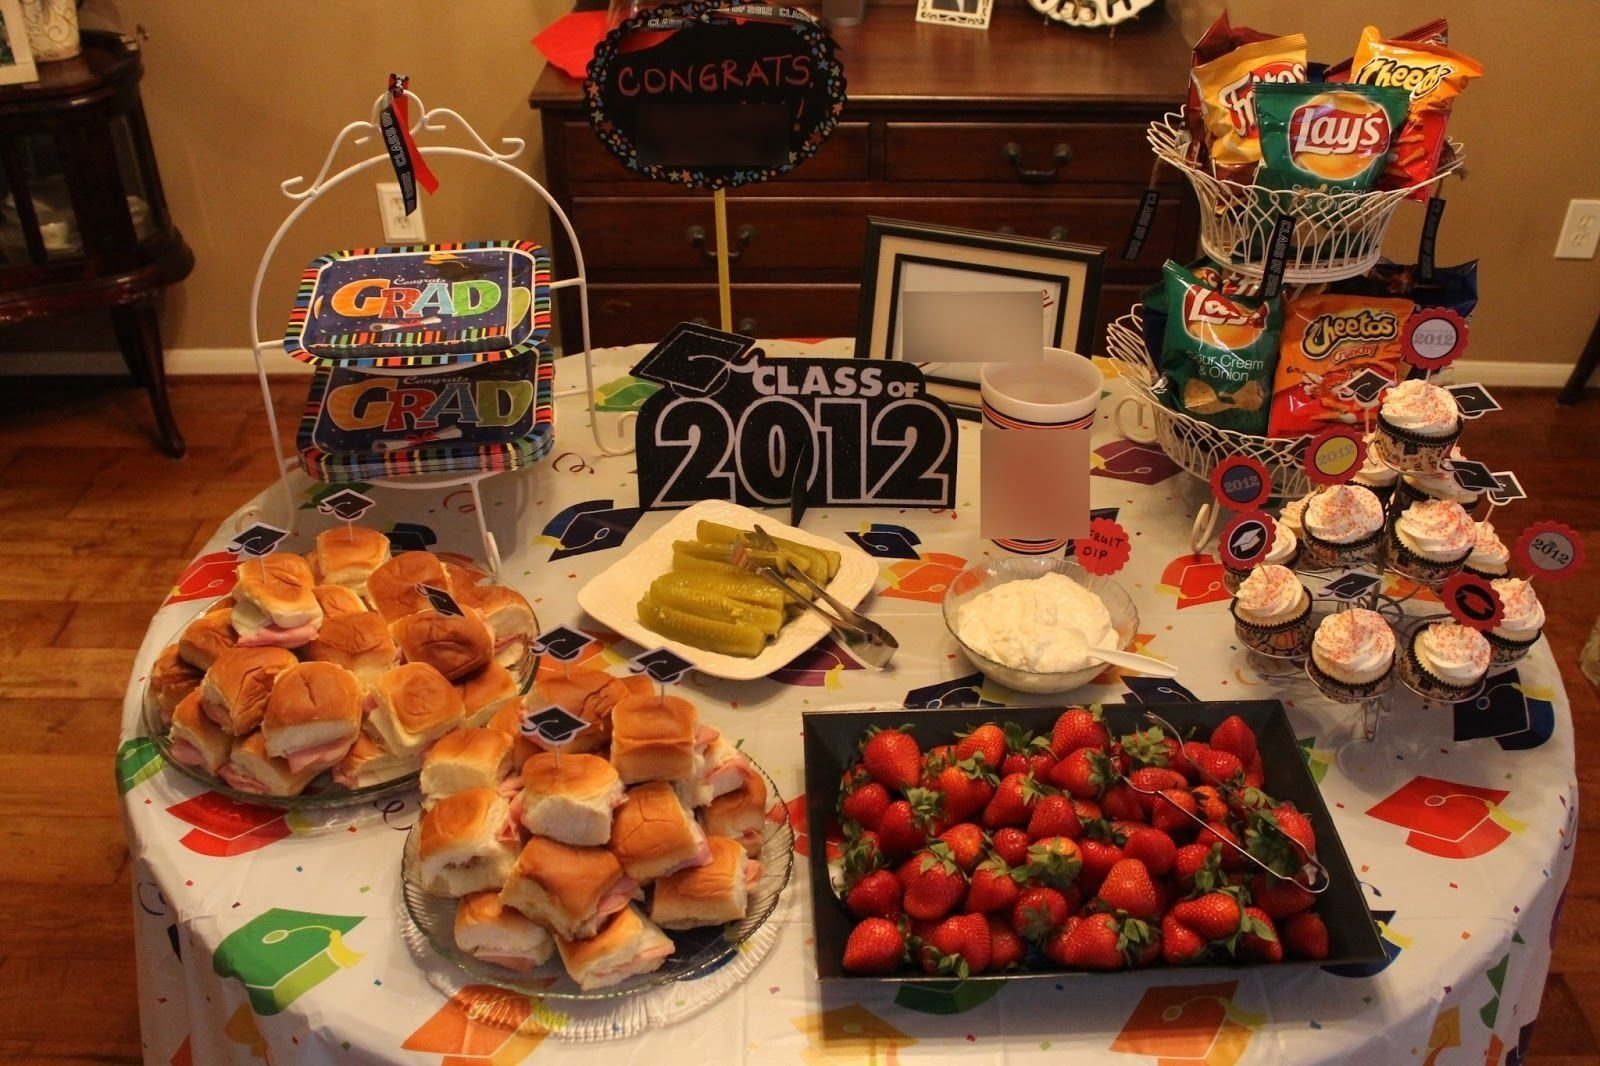 10 Fabulous Food Ideas For Graduation Party graduation decoration ideas this is just a simple banner i 8